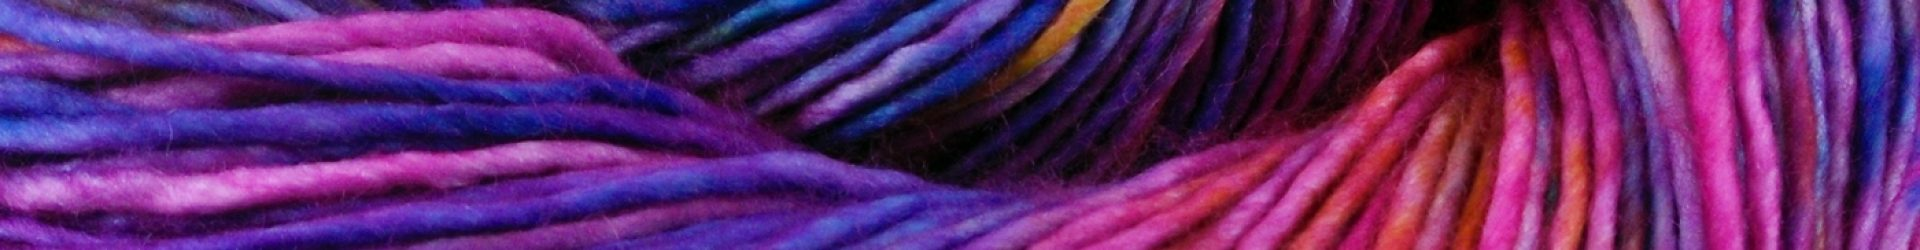 Worsted Pillowspun Twist – Cake for Breakfast (Worsted Weight)